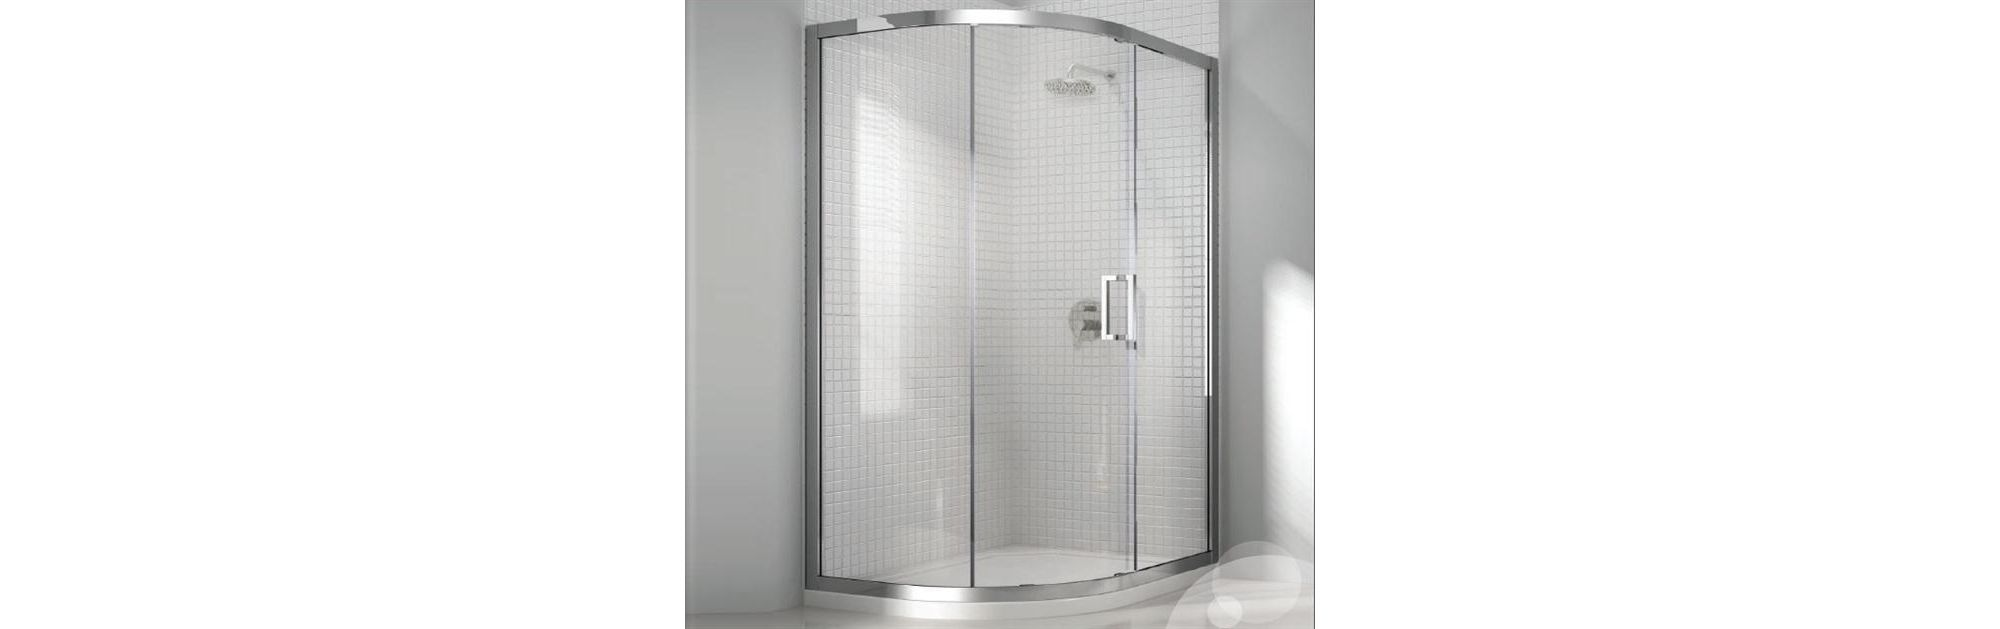 Merlyn Vivid Eight Offset Quadrant Shower Enclosure, 1200mm x 900mm, Left Handed, Low Profile Tray, 8mm Glass